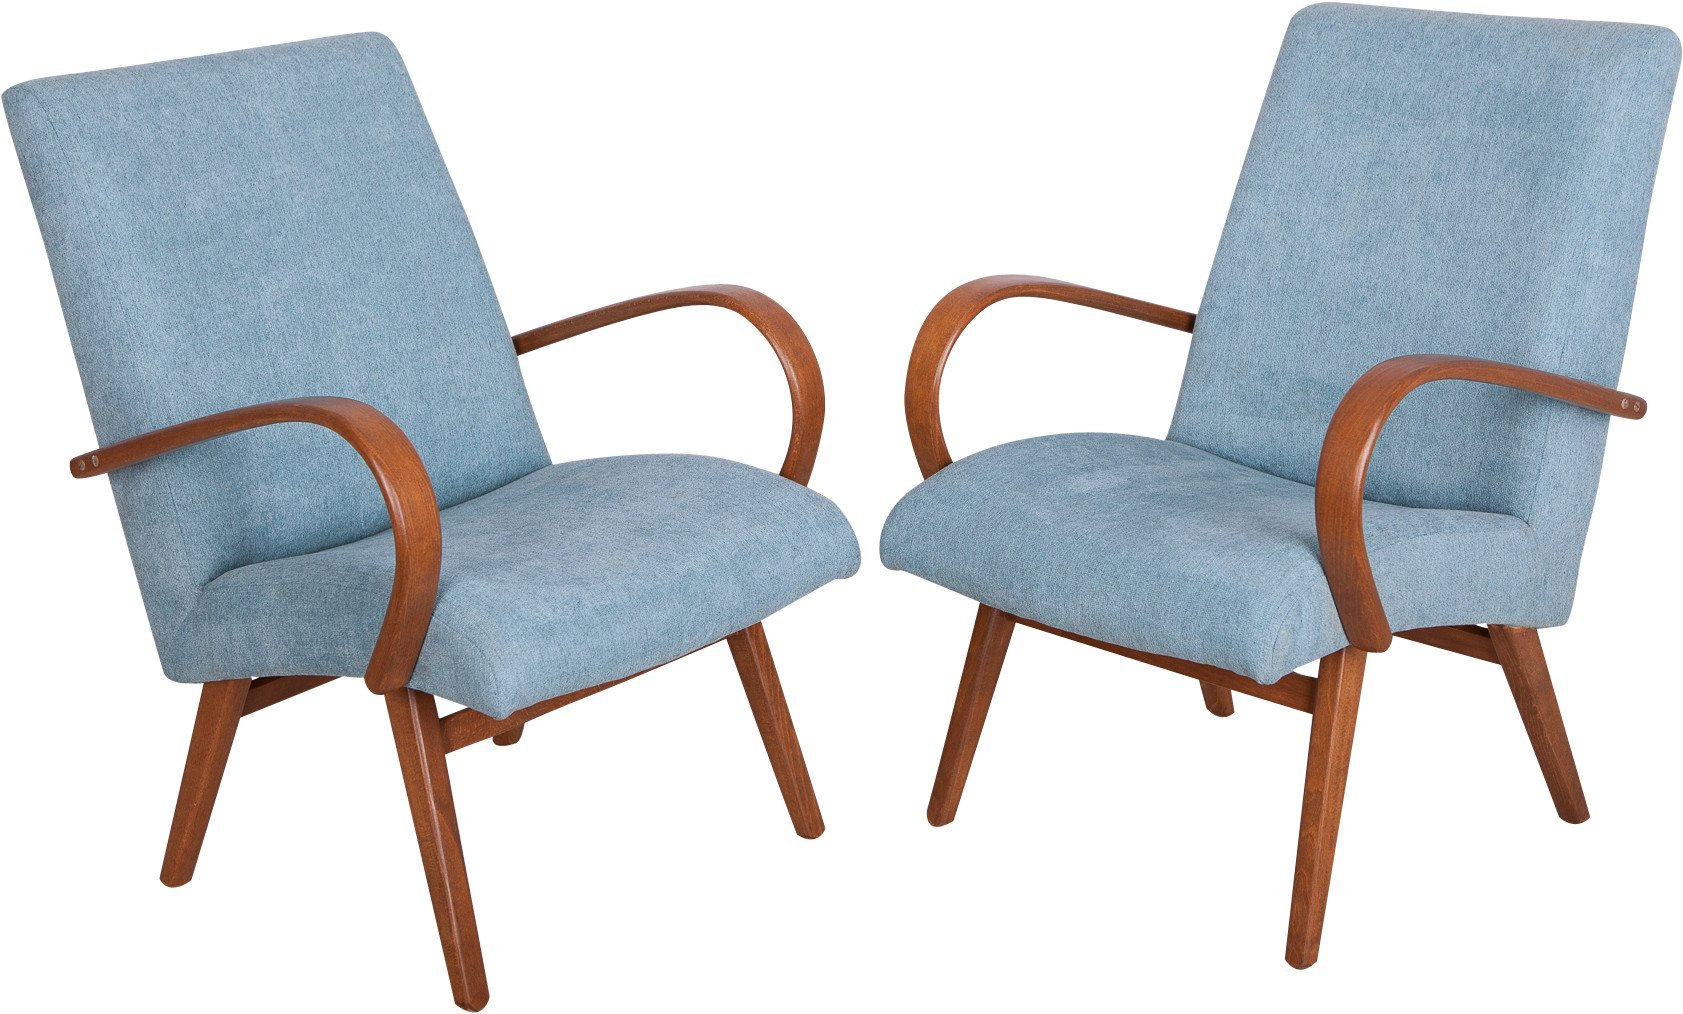 Pair of Armchairs by J. Šmidek for TON, Czechoslovakia, 1960s